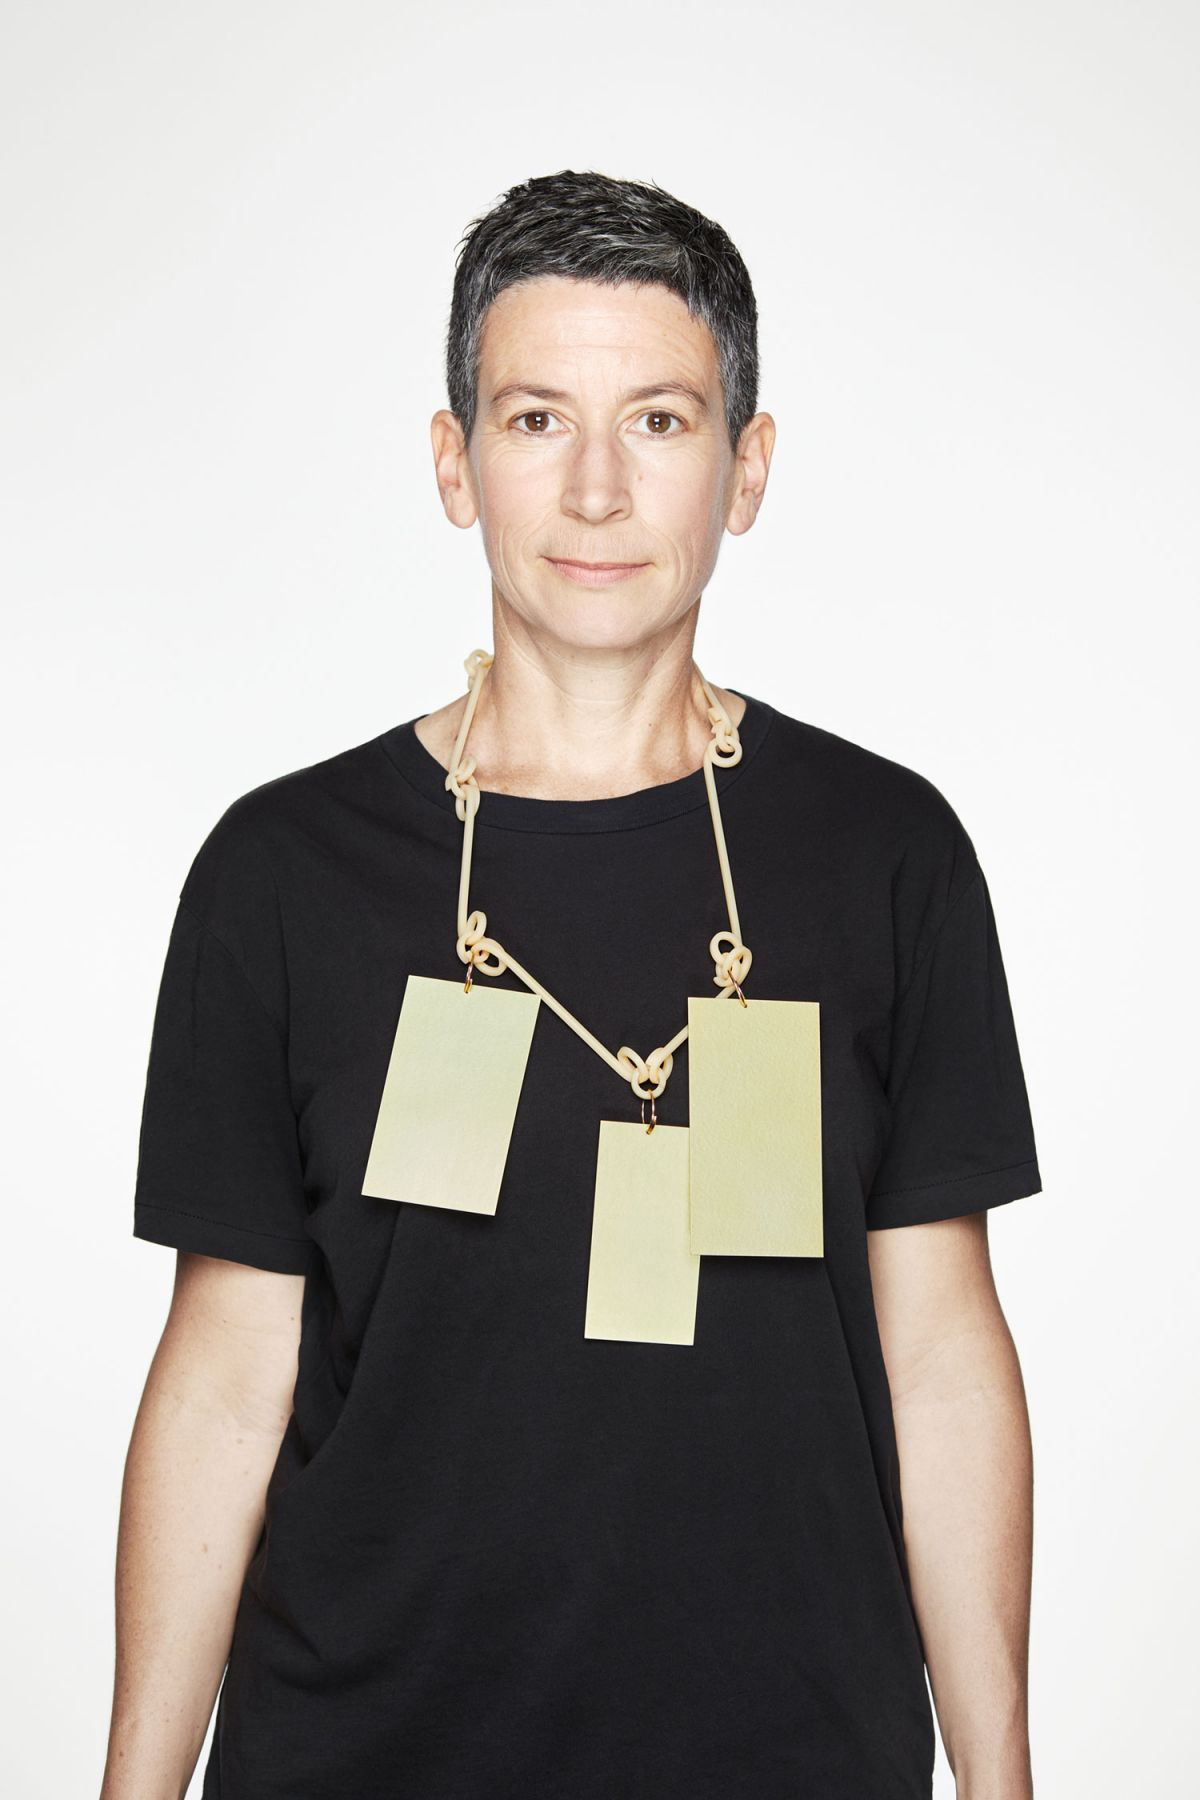 Karin Johannson, Observations From a Distance, Jewelry, necklace, anodized aluminum